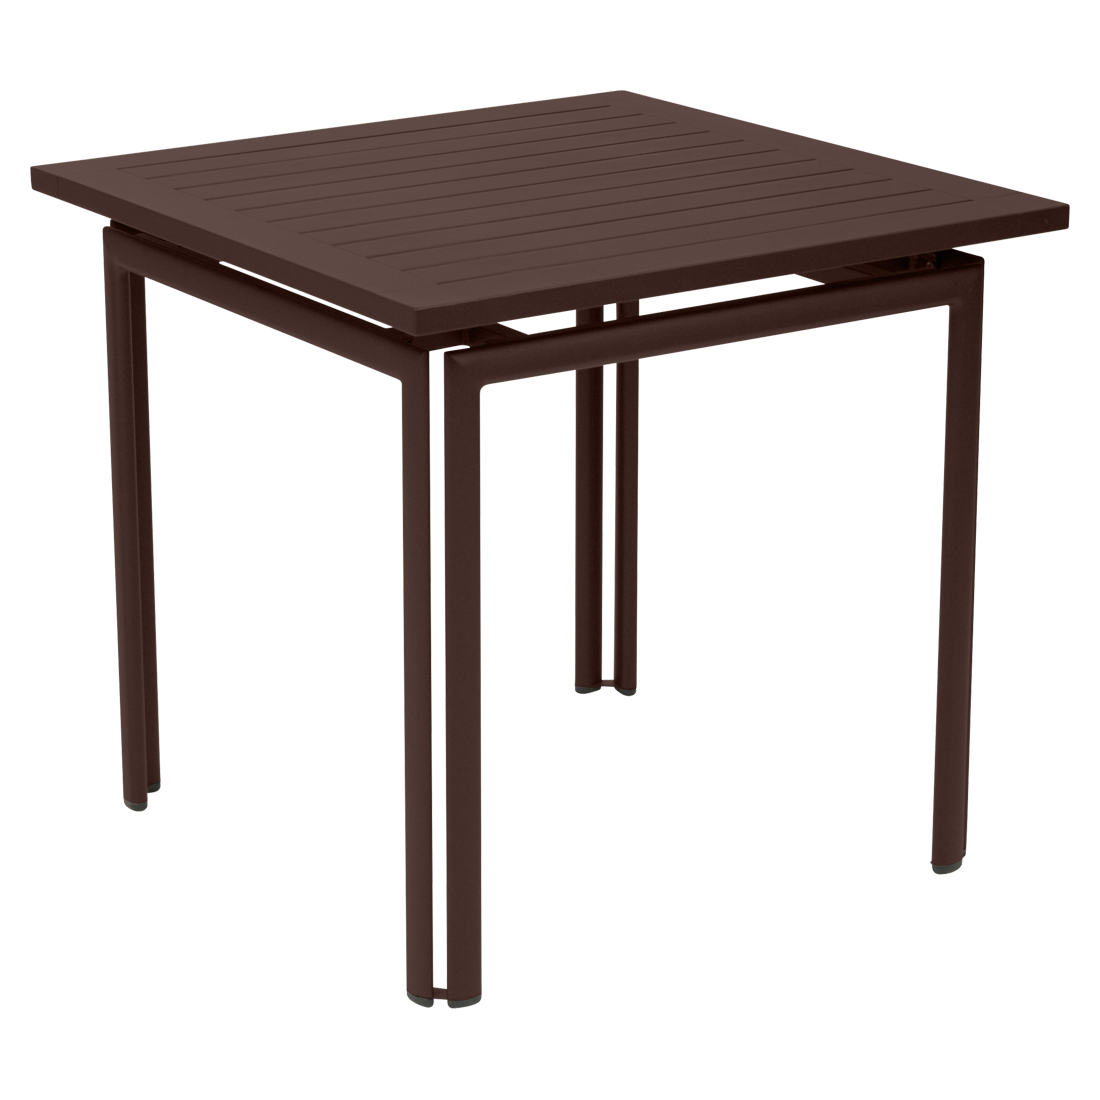 costa 80x80 cm table, garden metal table for 4